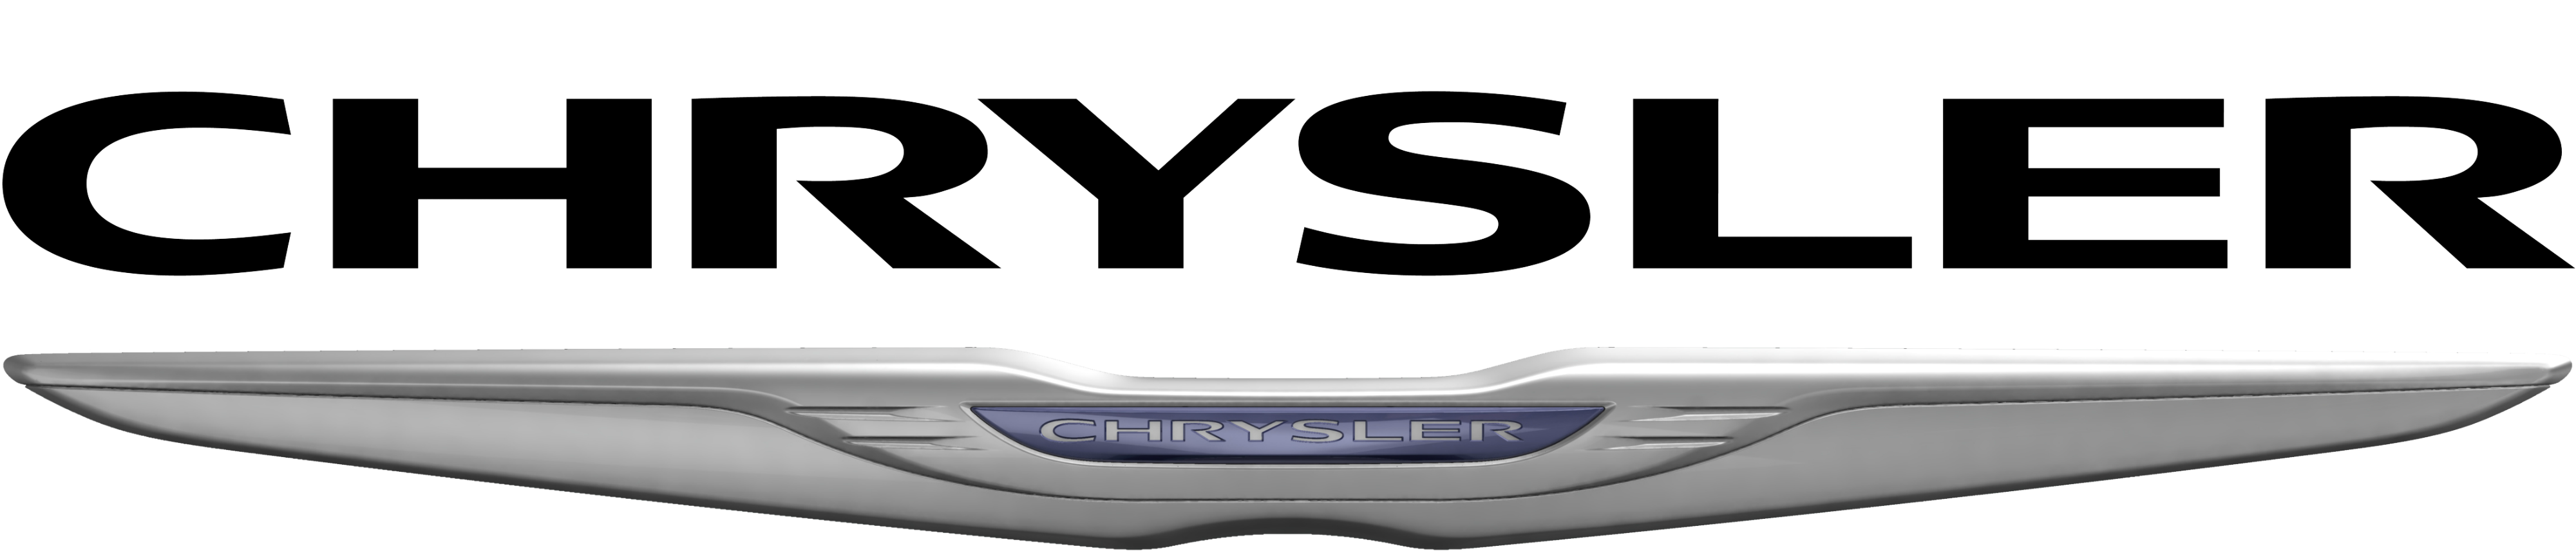 Chrysler Logo, Chrysler Car Symbol Meaning And History | Car Brand ...